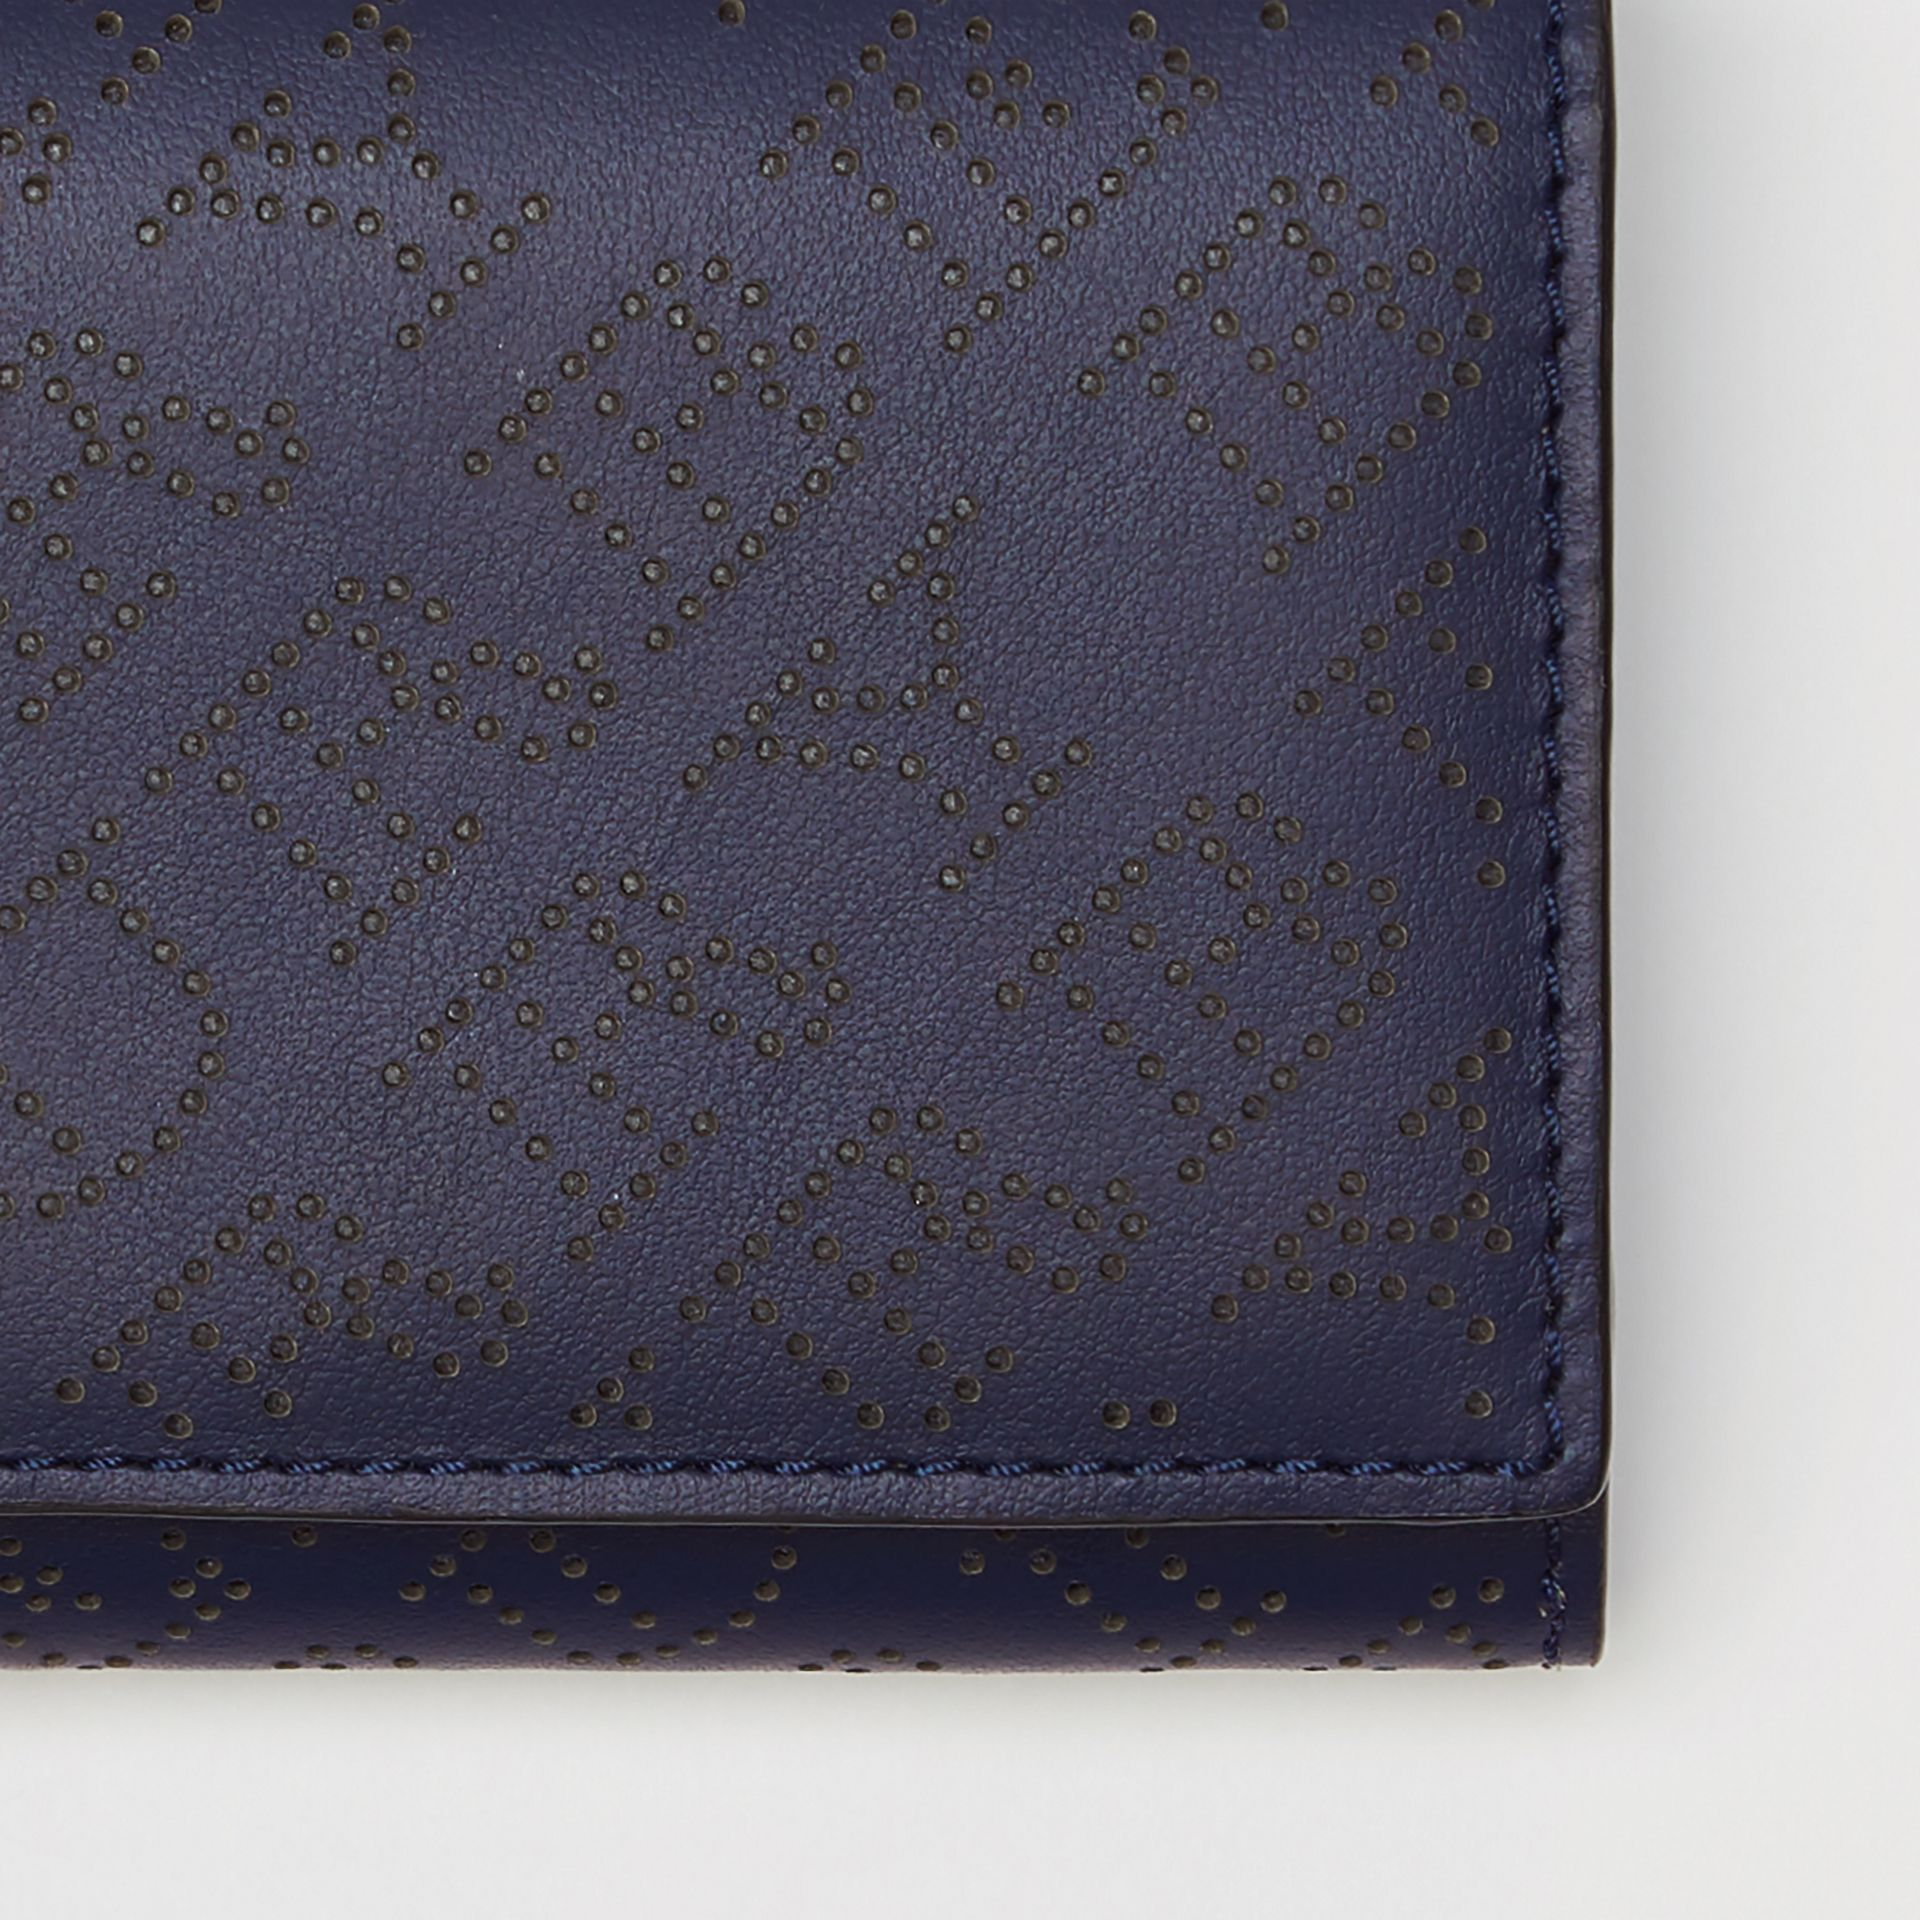 Small Perforated Logo Leather Wallet in Navy - Women | Burberry Singapore - gallery image 1